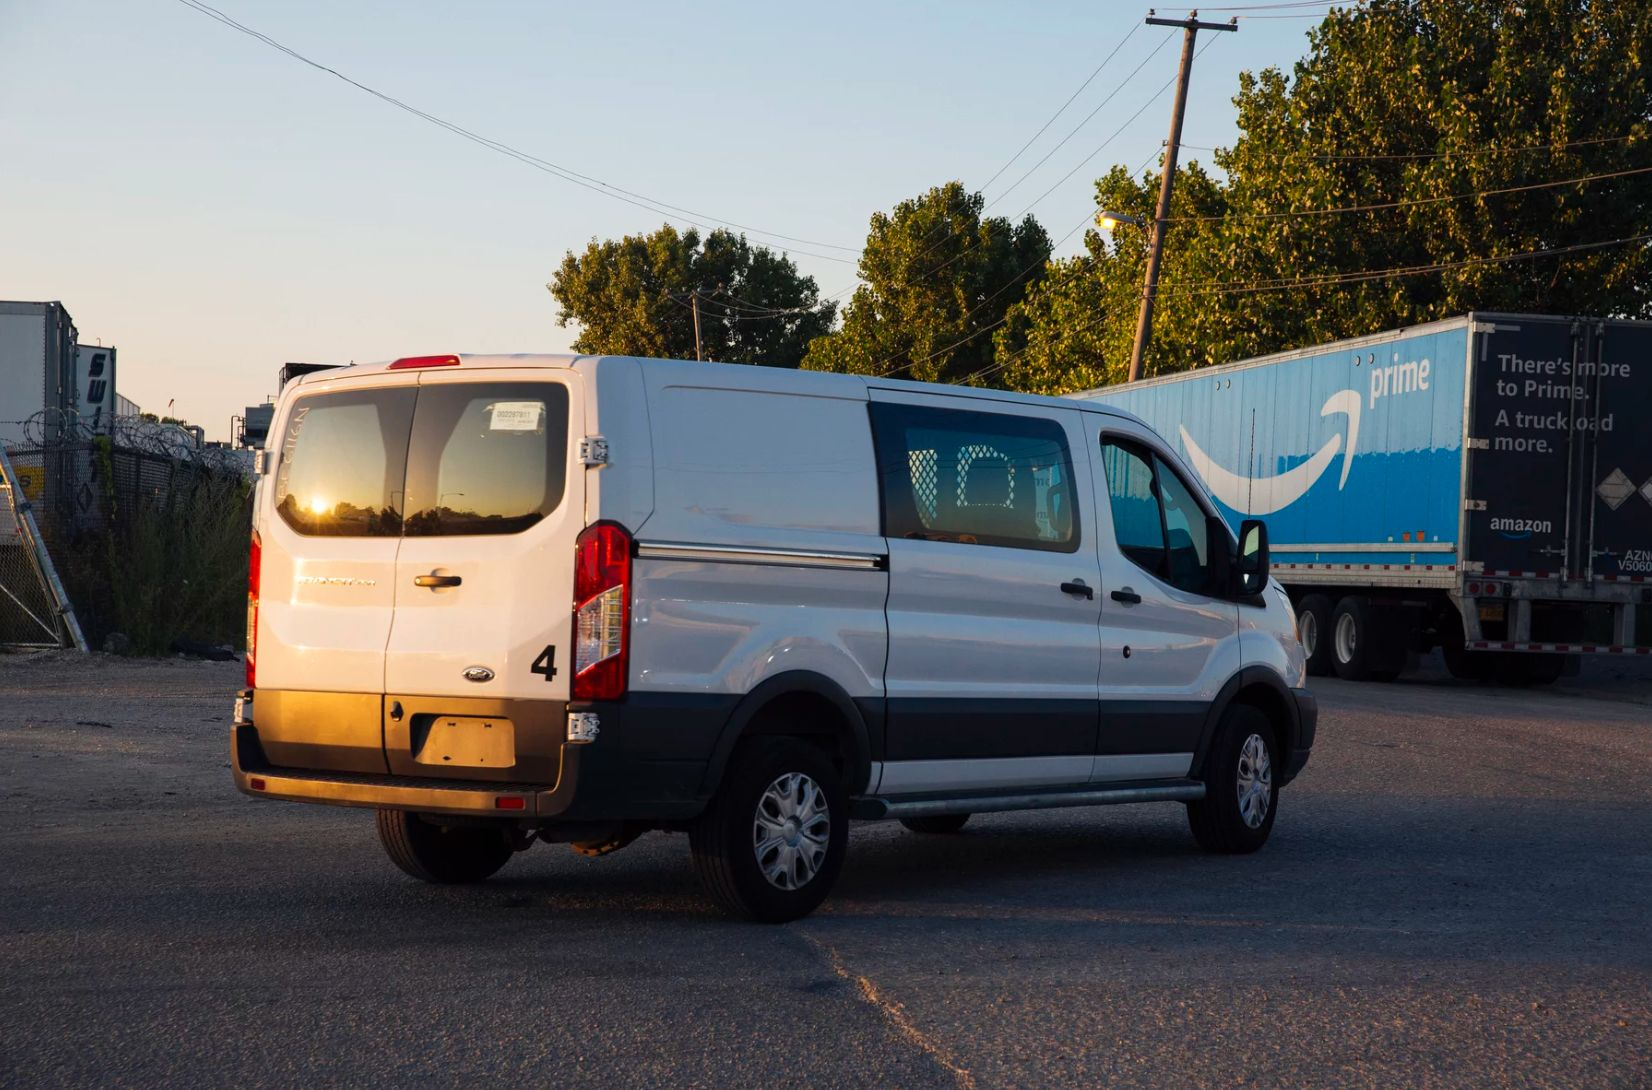 A van at the Amazon warehouse near where Raul Salinas was hit. (Taylor Glascock for ProPublica)